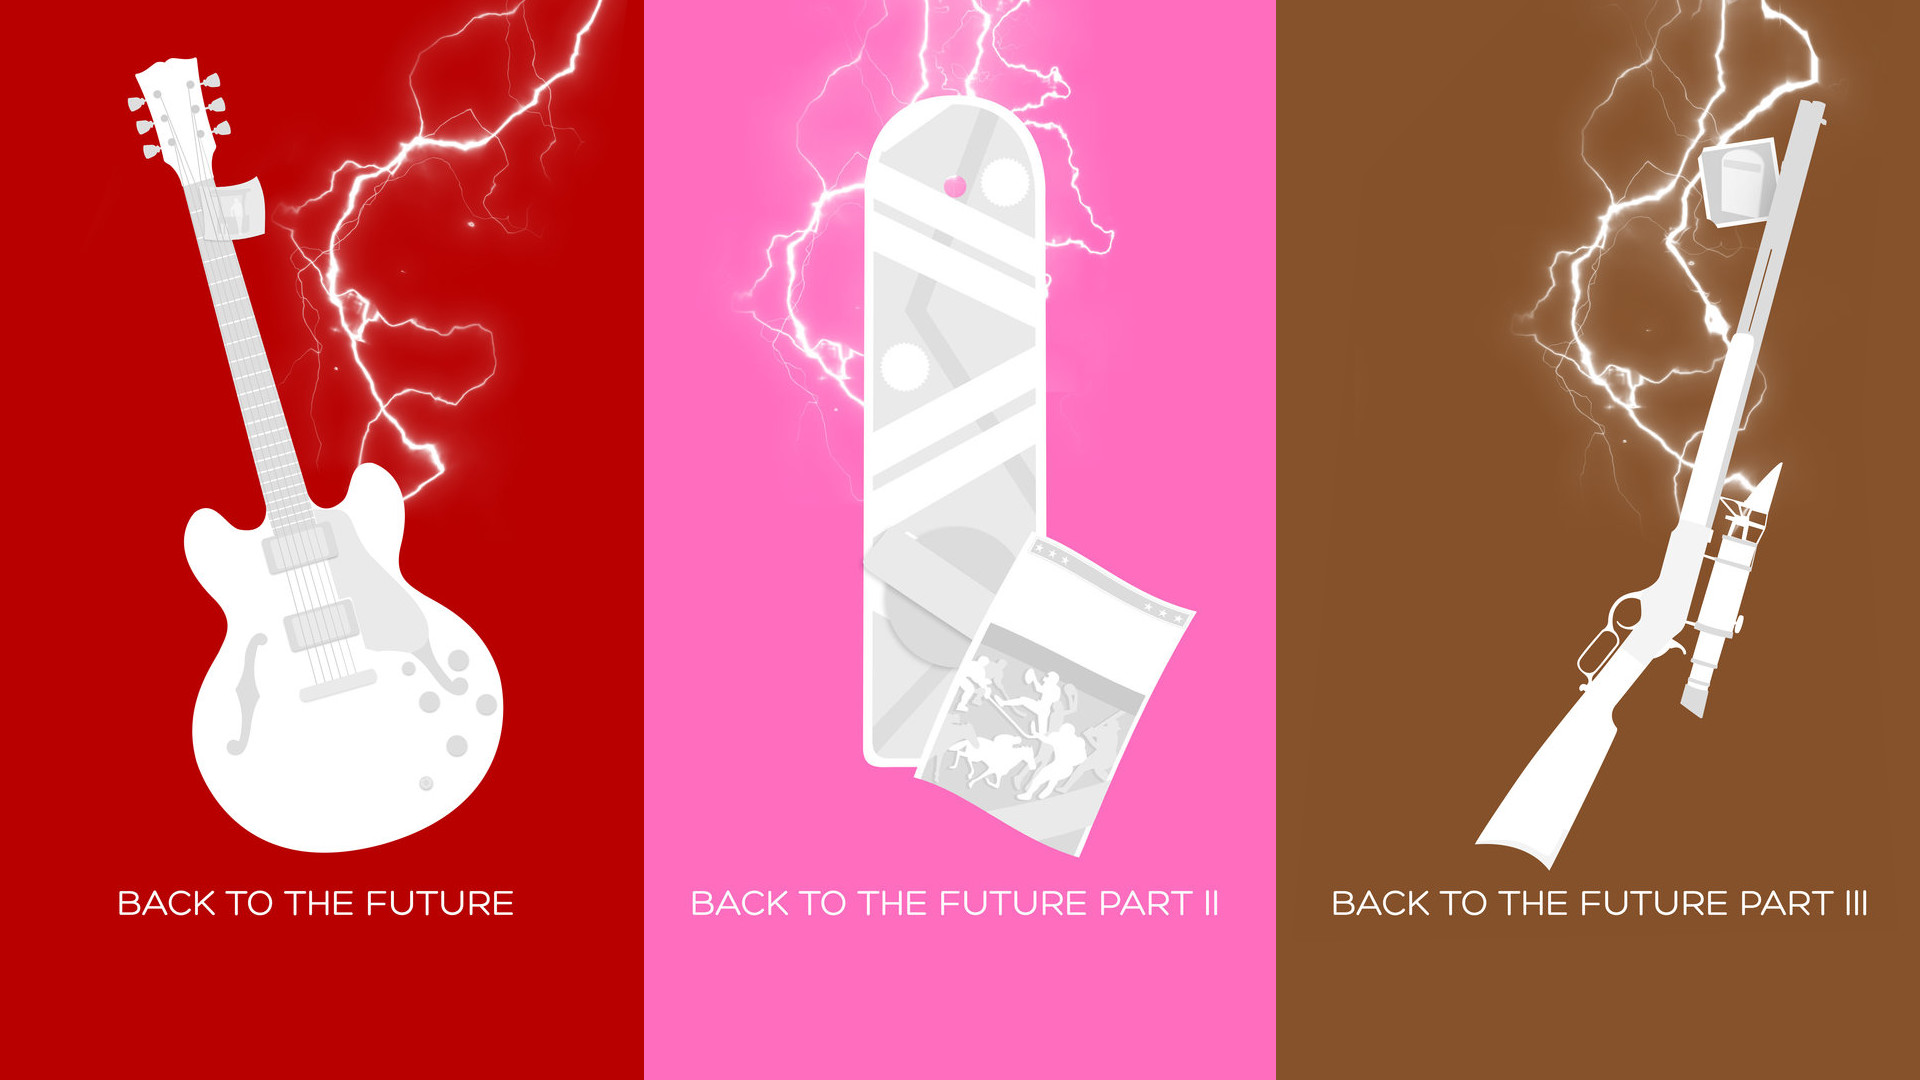 Back to the future by the same guy who did the Three Flavours .